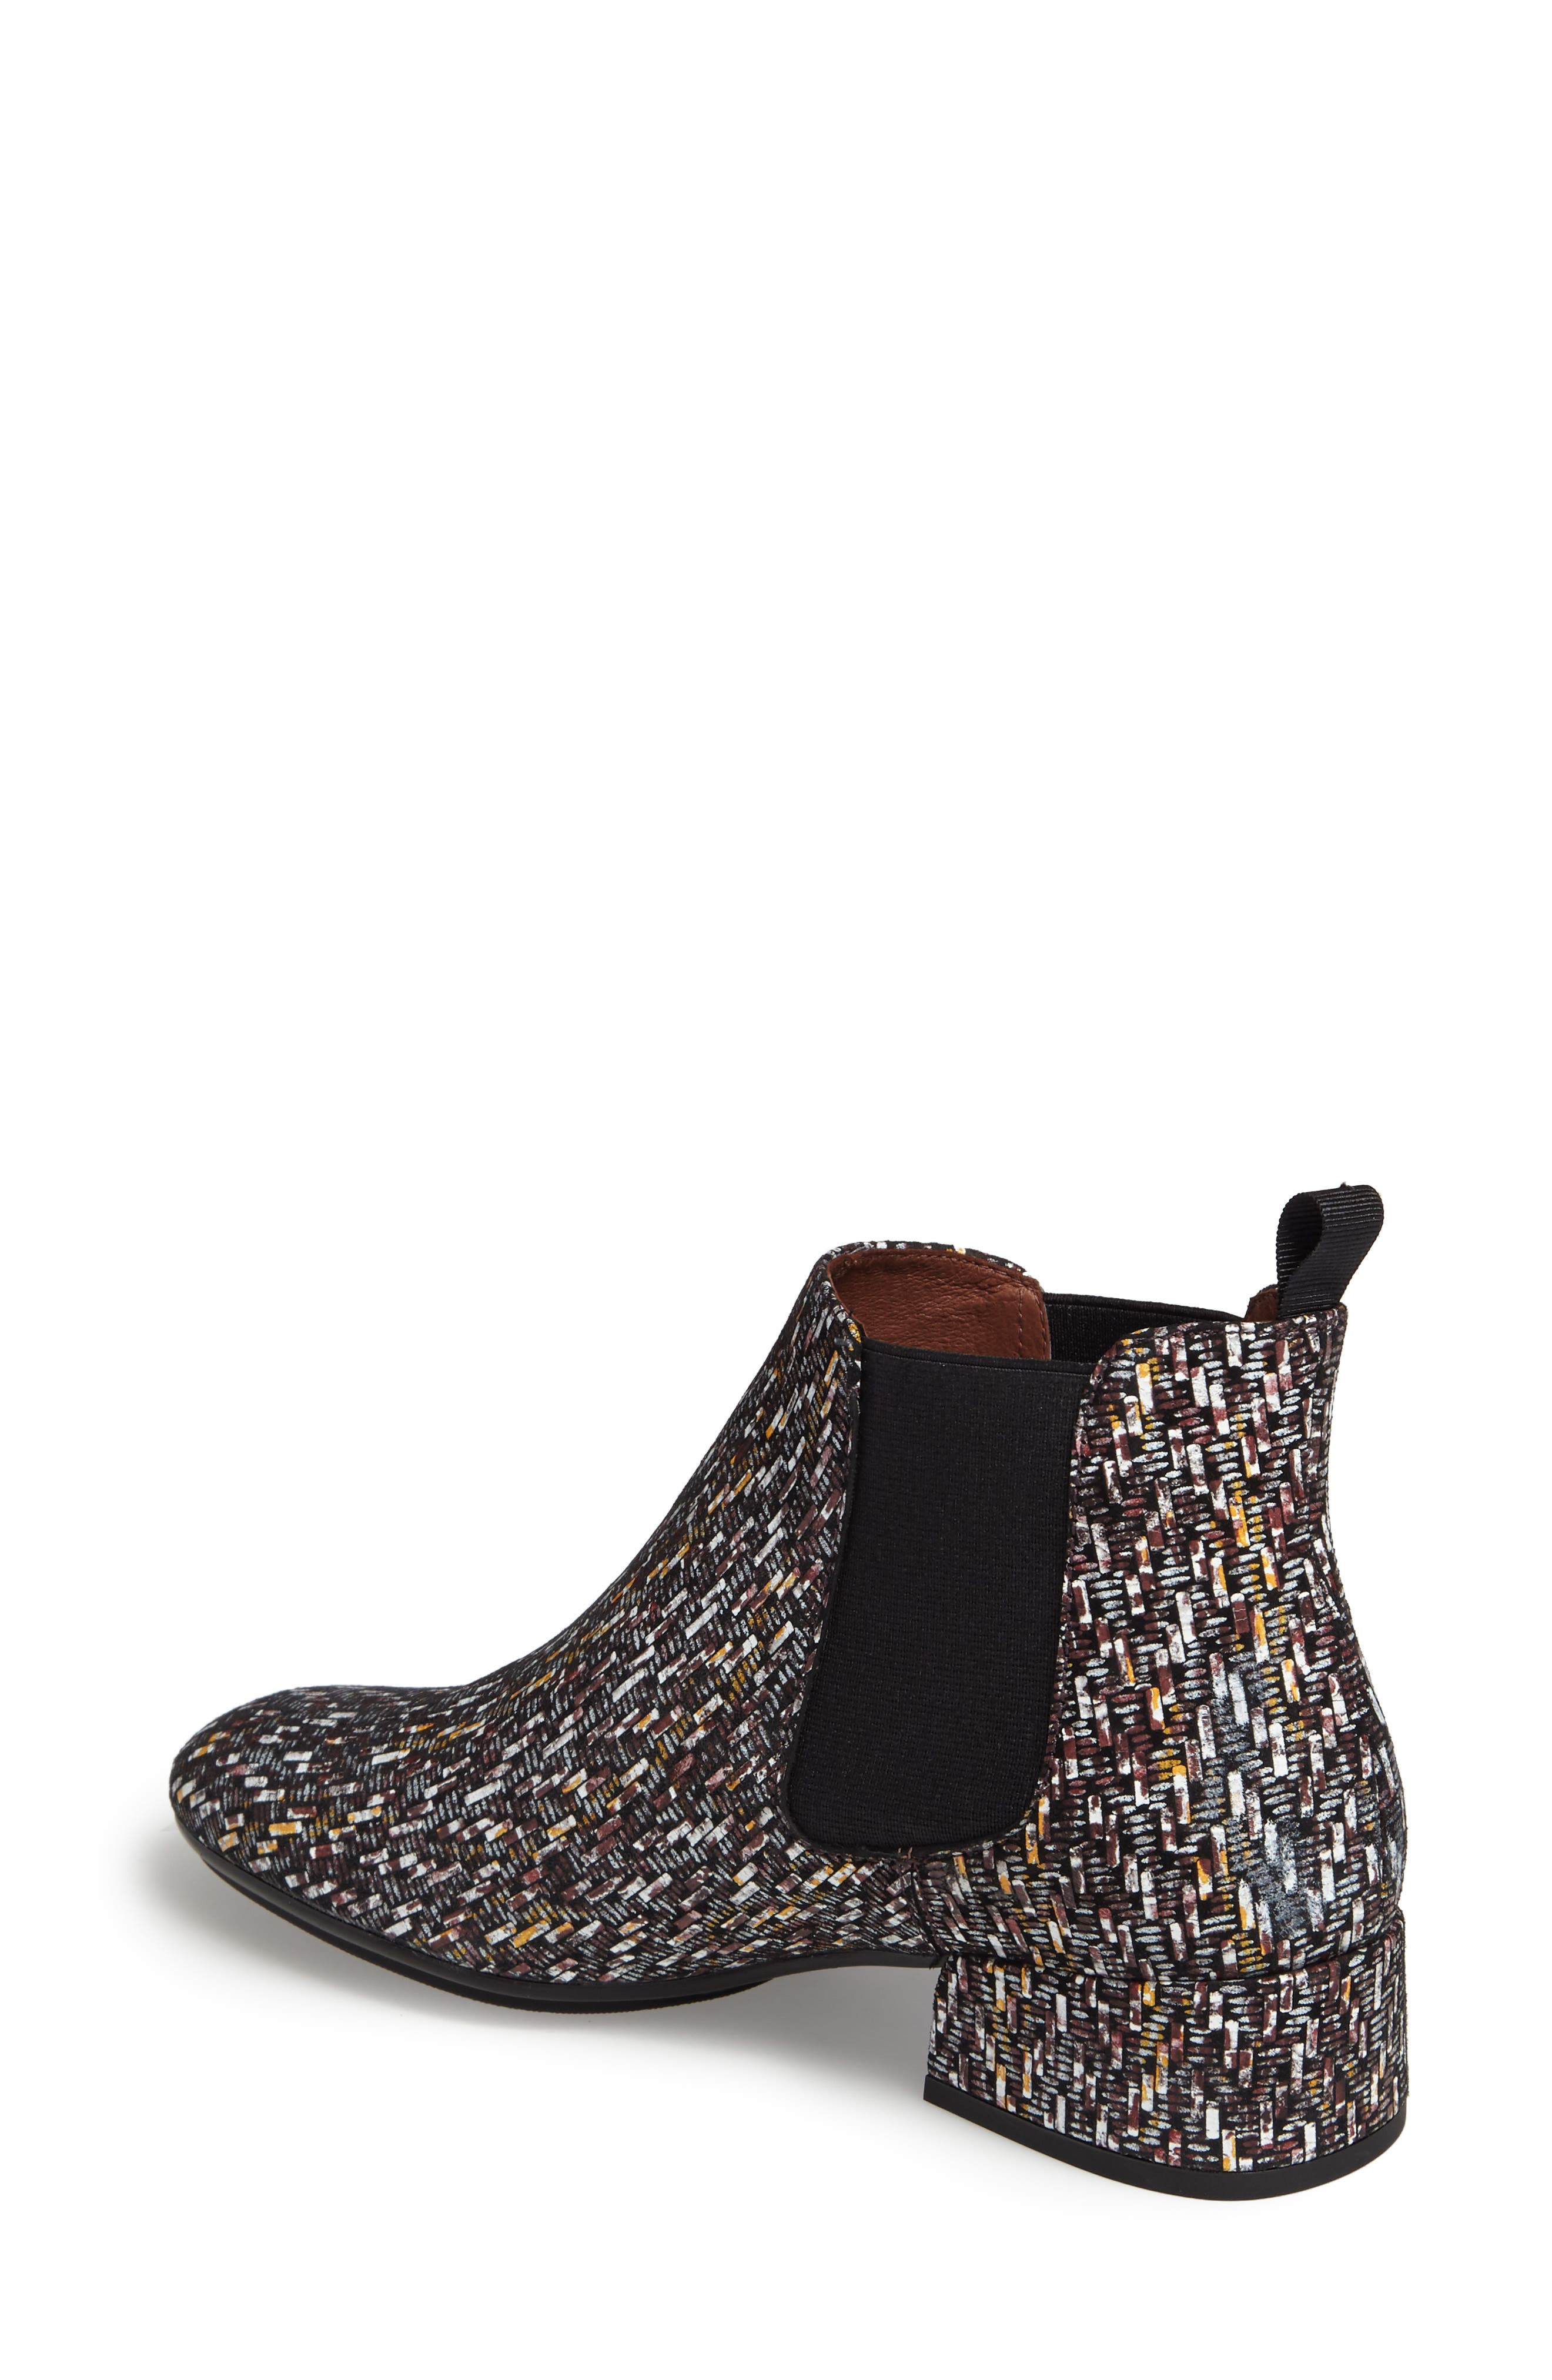 Ellys Patterned Chelsea Bootie,                             Alternate thumbnail 2, color,                             Bordo Leather